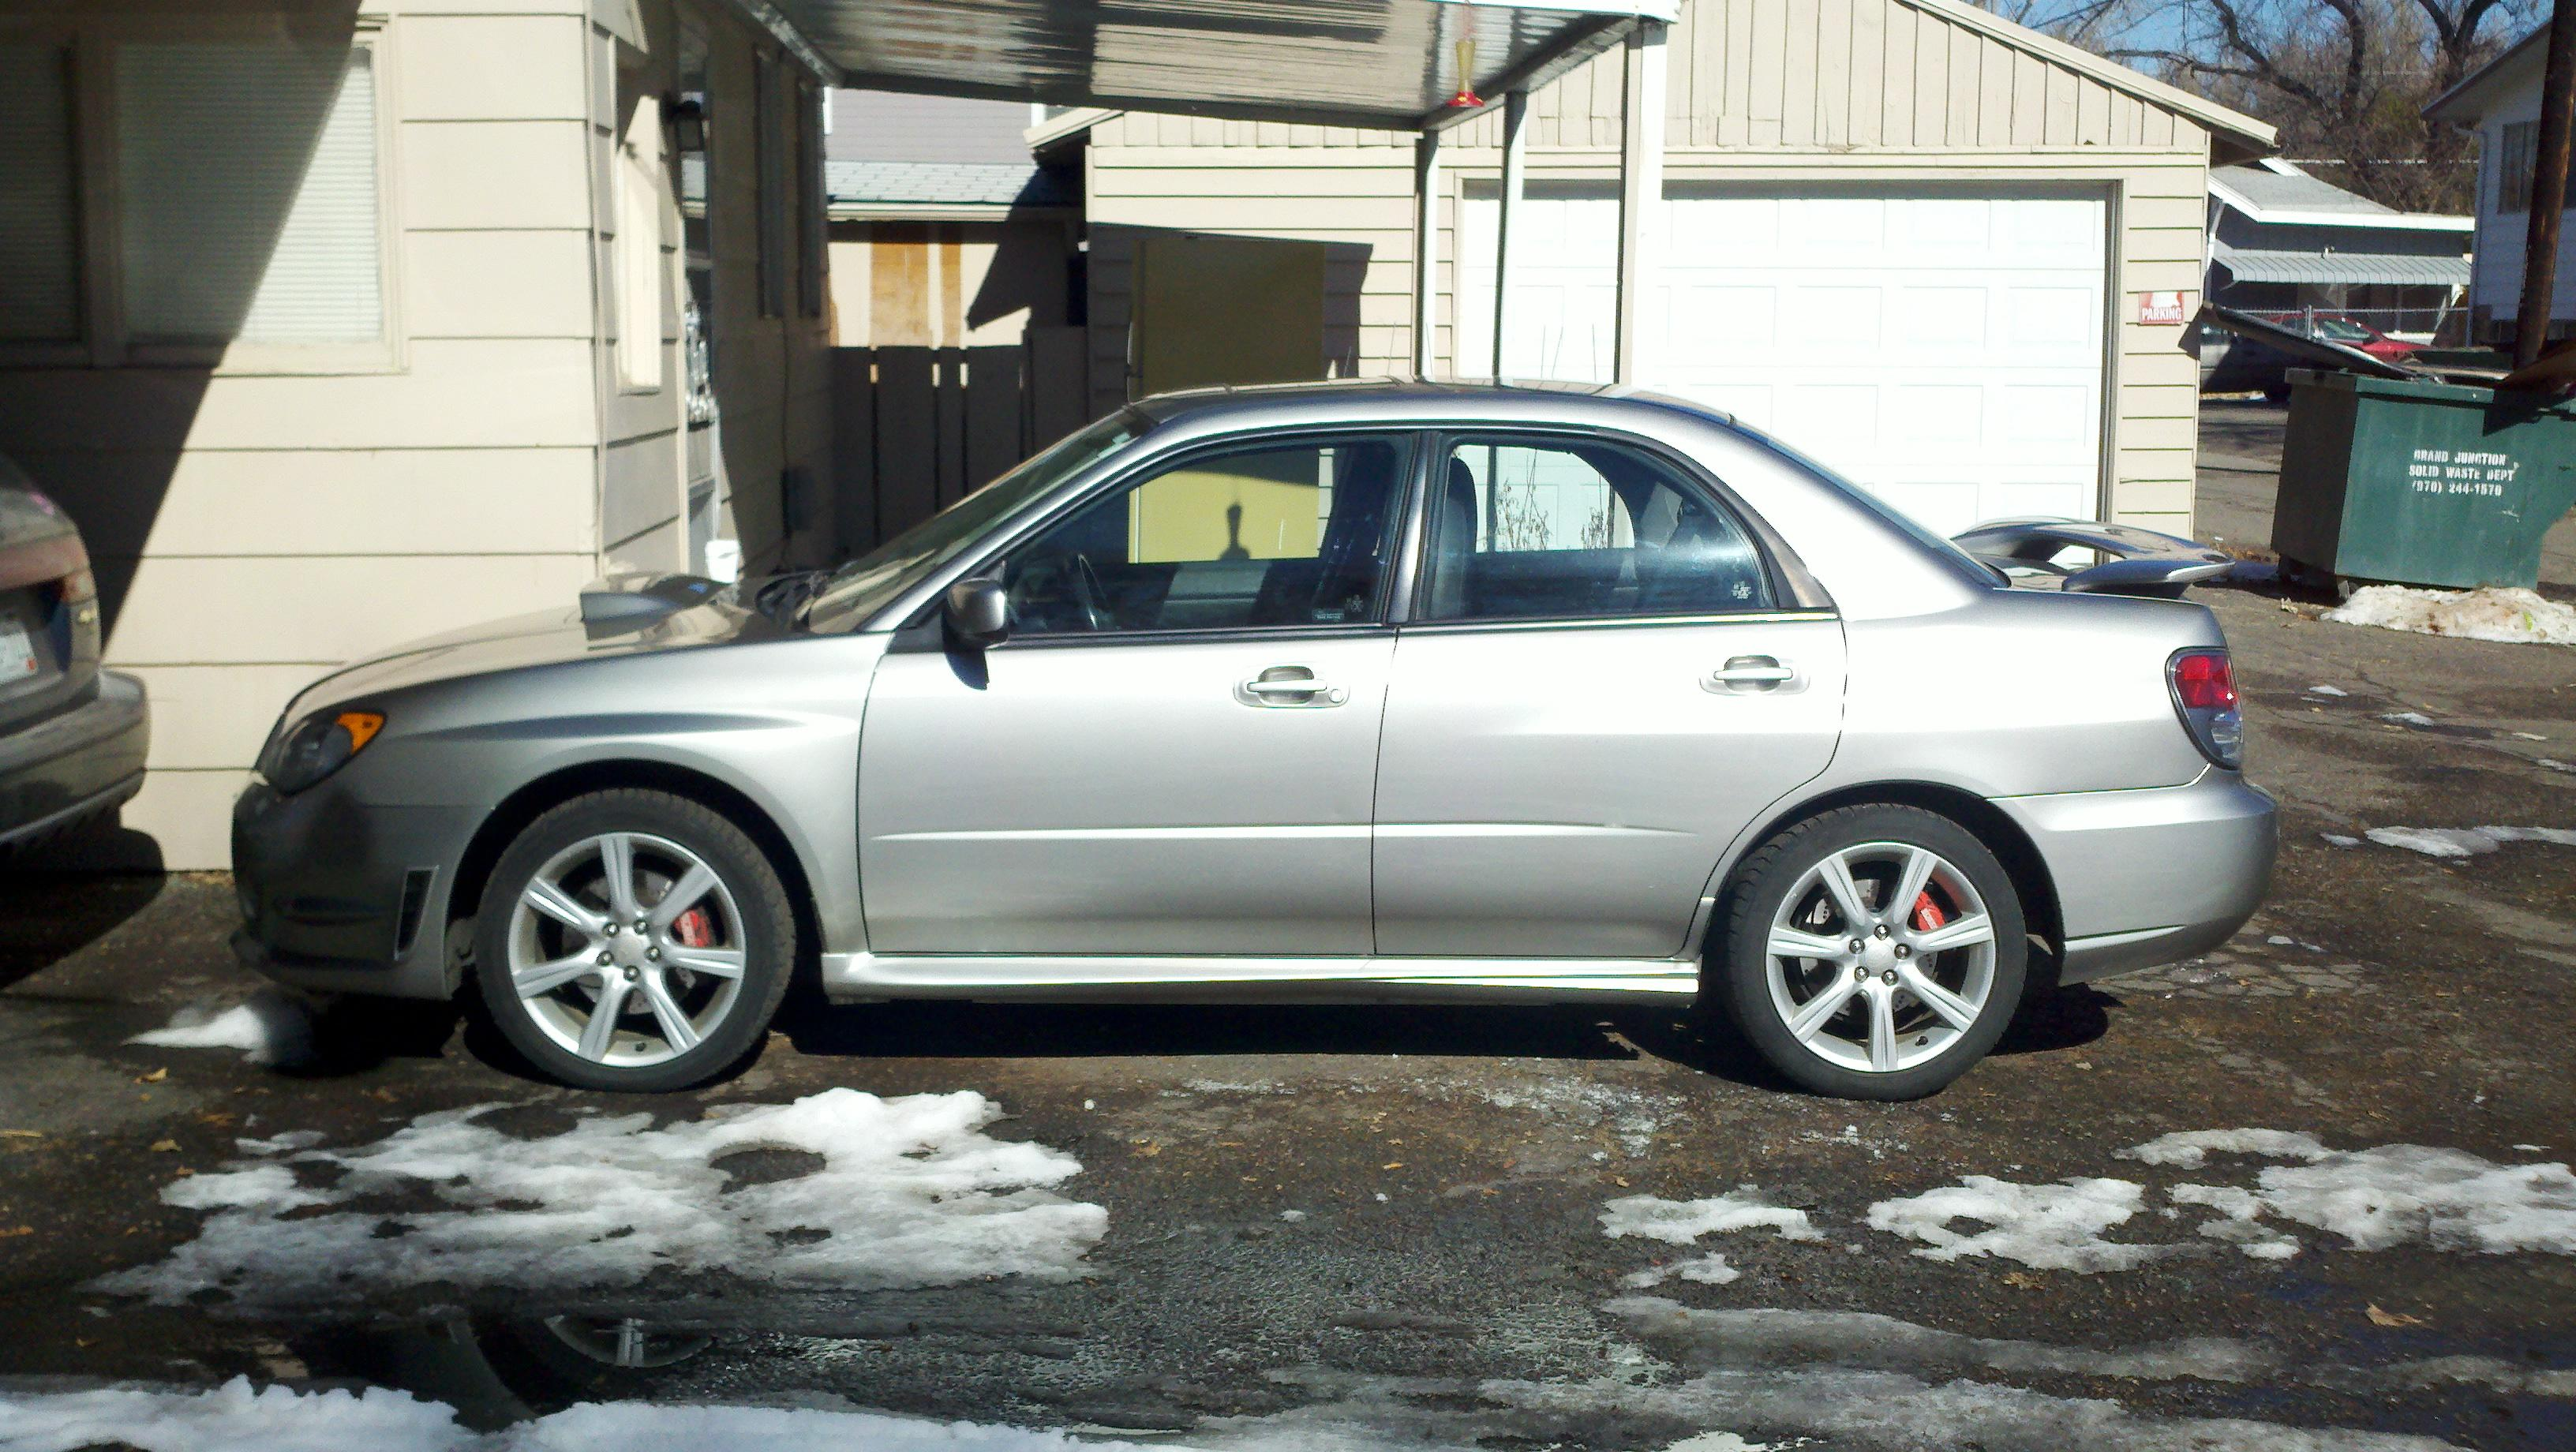 michriemann 2006 subaru imprezawrx limited sedan 4d specs photos modification info at cardomain. Black Bedroom Furniture Sets. Home Design Ideas